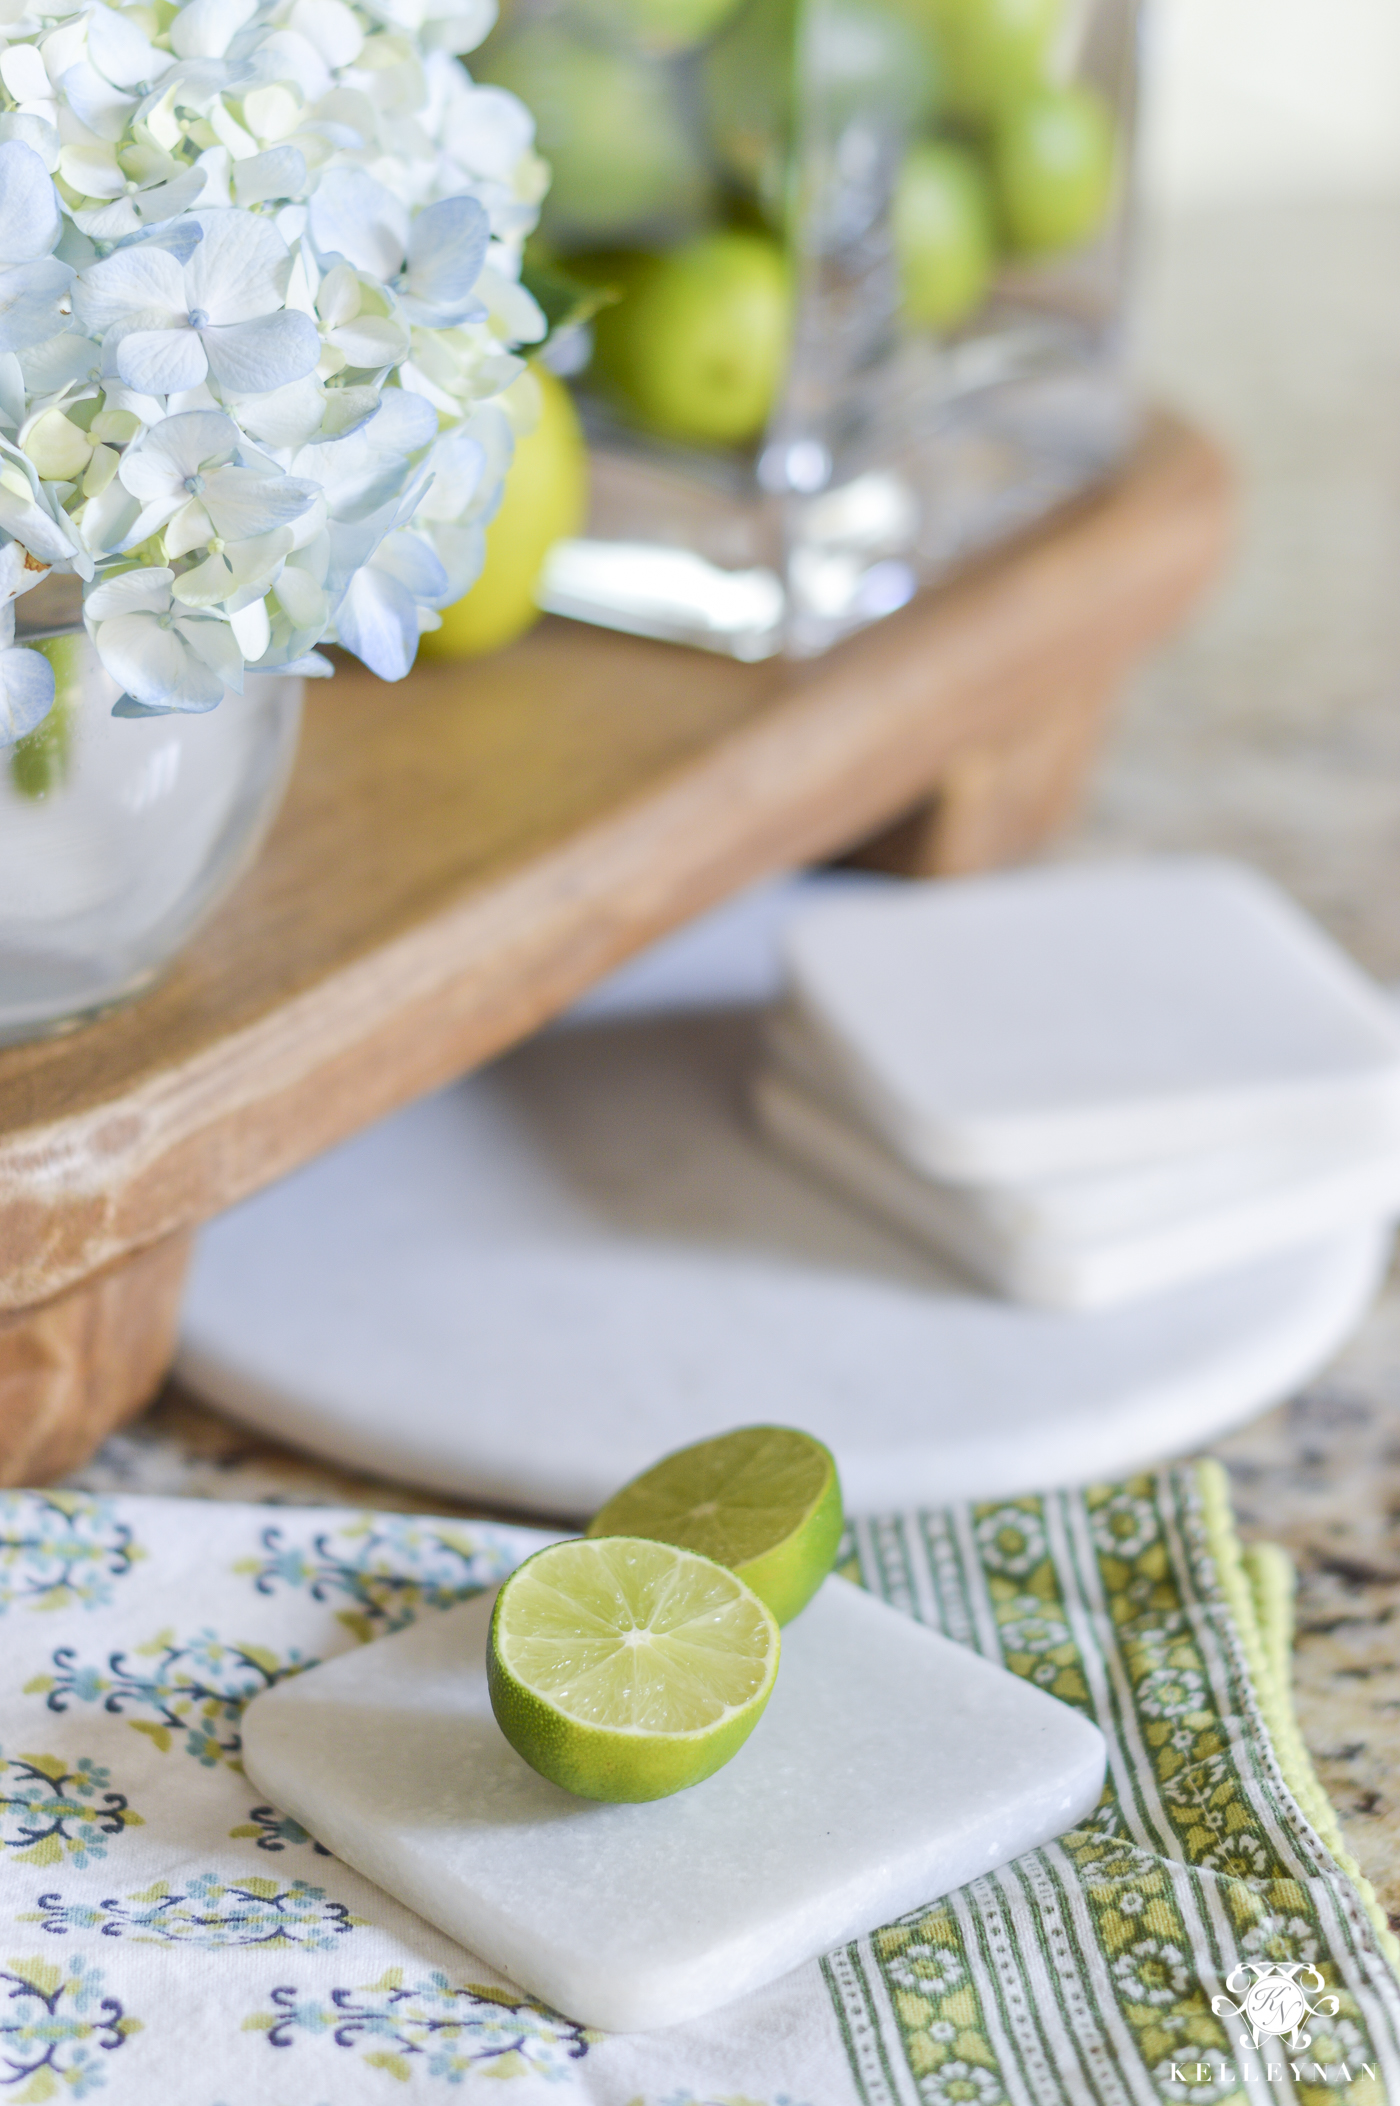 Lemon And Lime Kitchen Decor Three Ways To Bring Spring To The Kitchen For Less Than 10